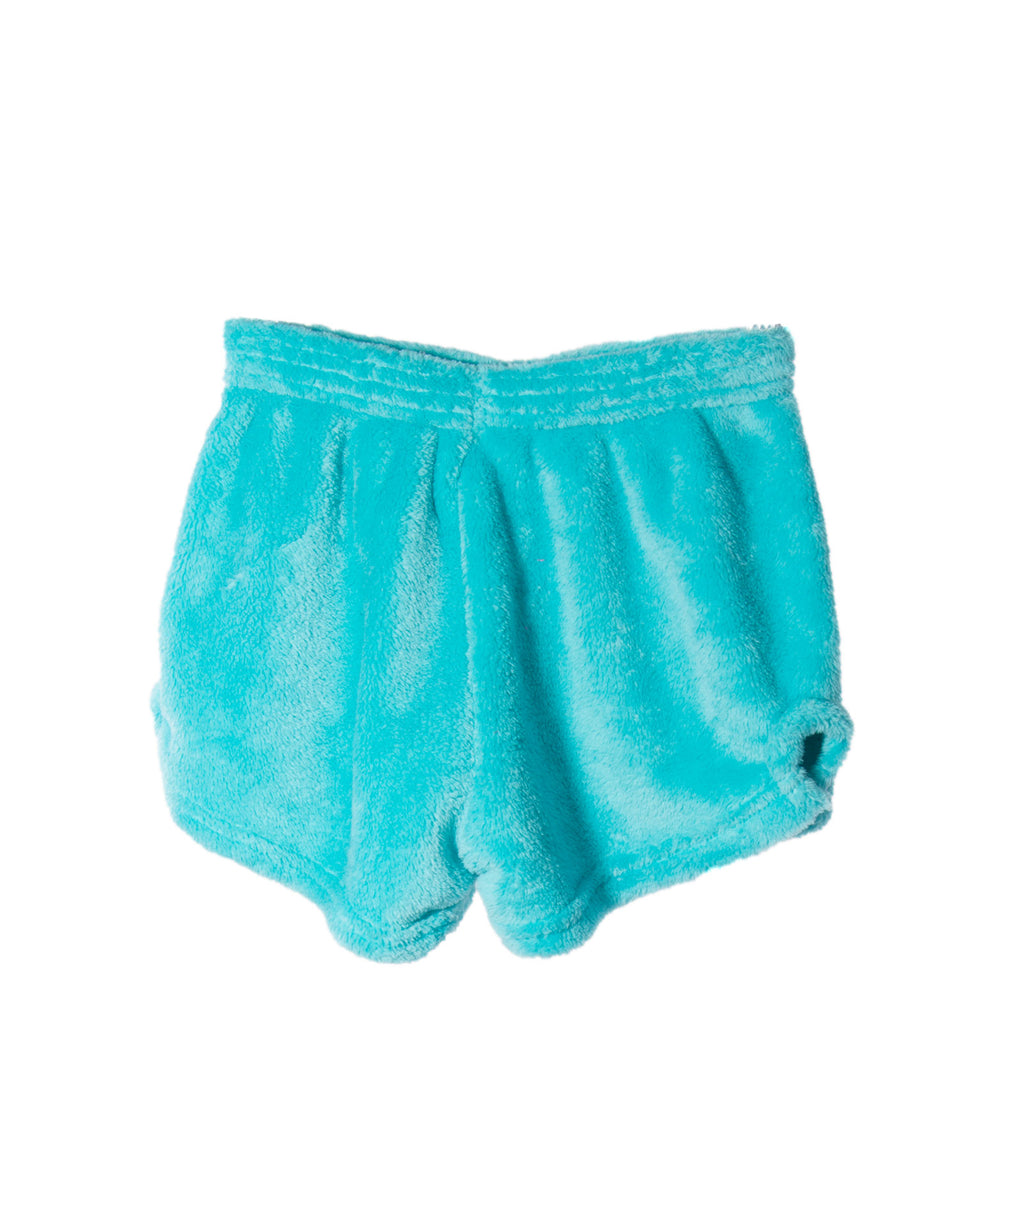 Made with Love and Kisses Girls Blue Pineapple Shorts